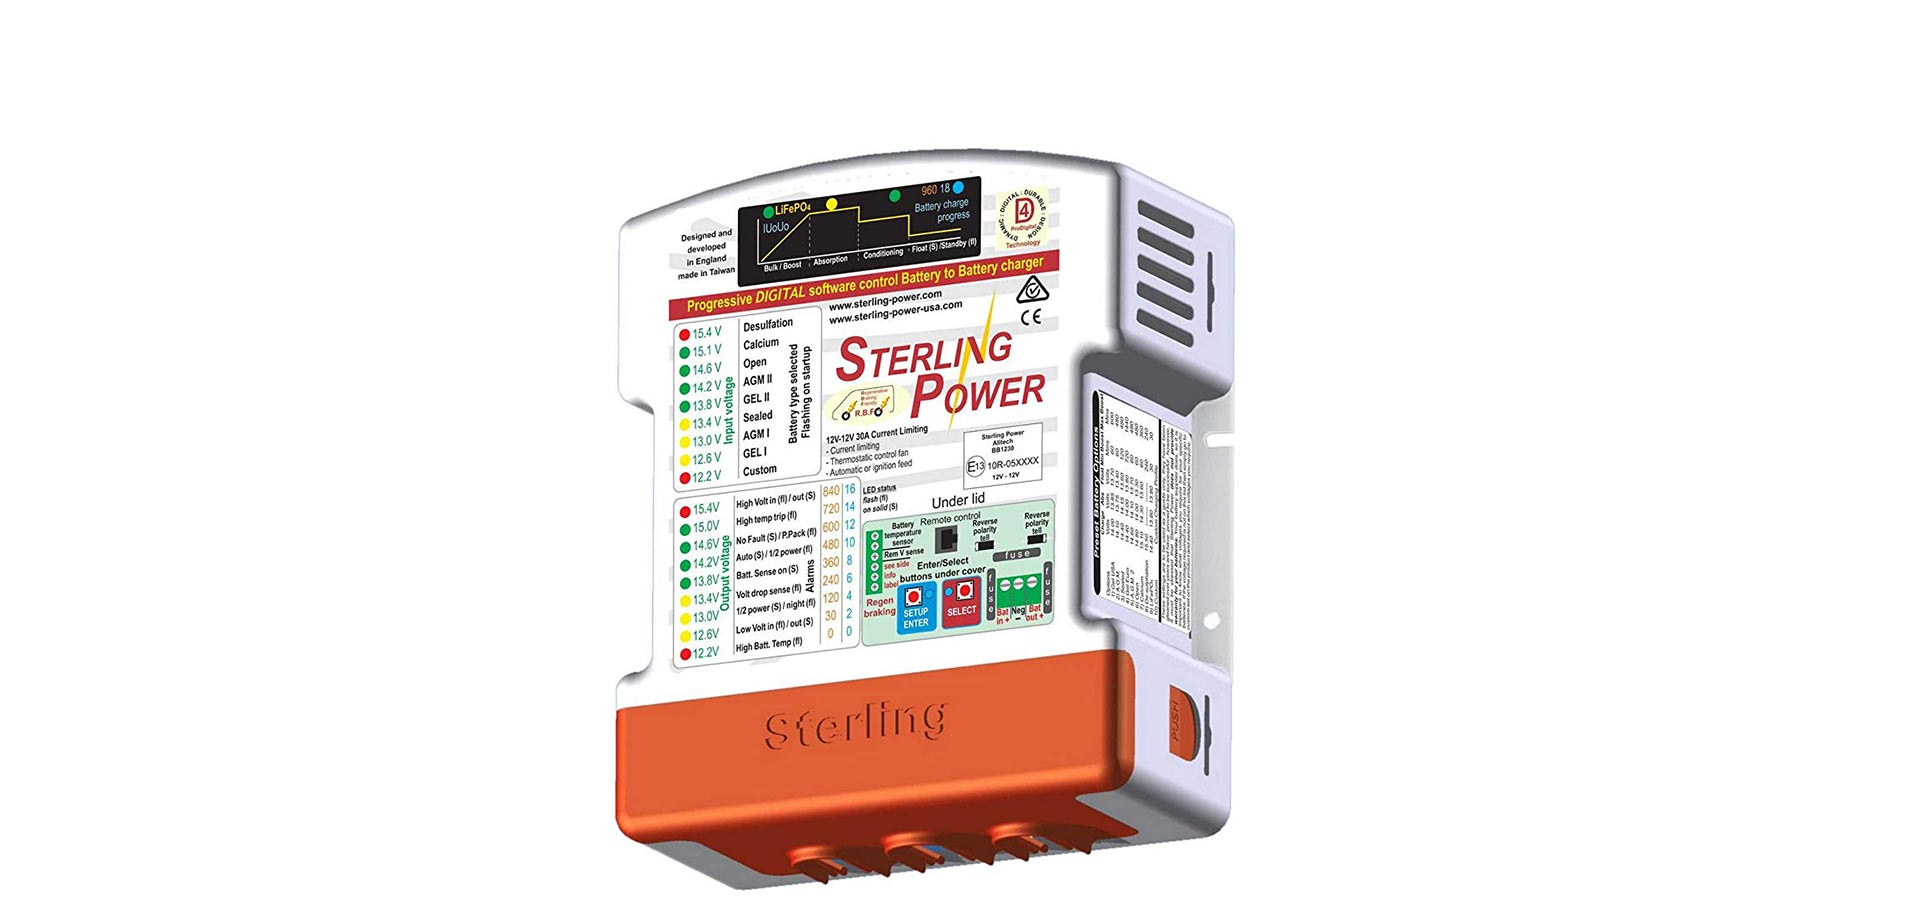 Sterling Power BB1260 Battery to Battery (B2B) Charger ... on sterling fuse box diagram, sterling truck air sensor diagram, sterling parts catalog, sterling sc8000 wiring, sterling truck parts diagram, sterling electrical diagrams, sterling truck wiring,